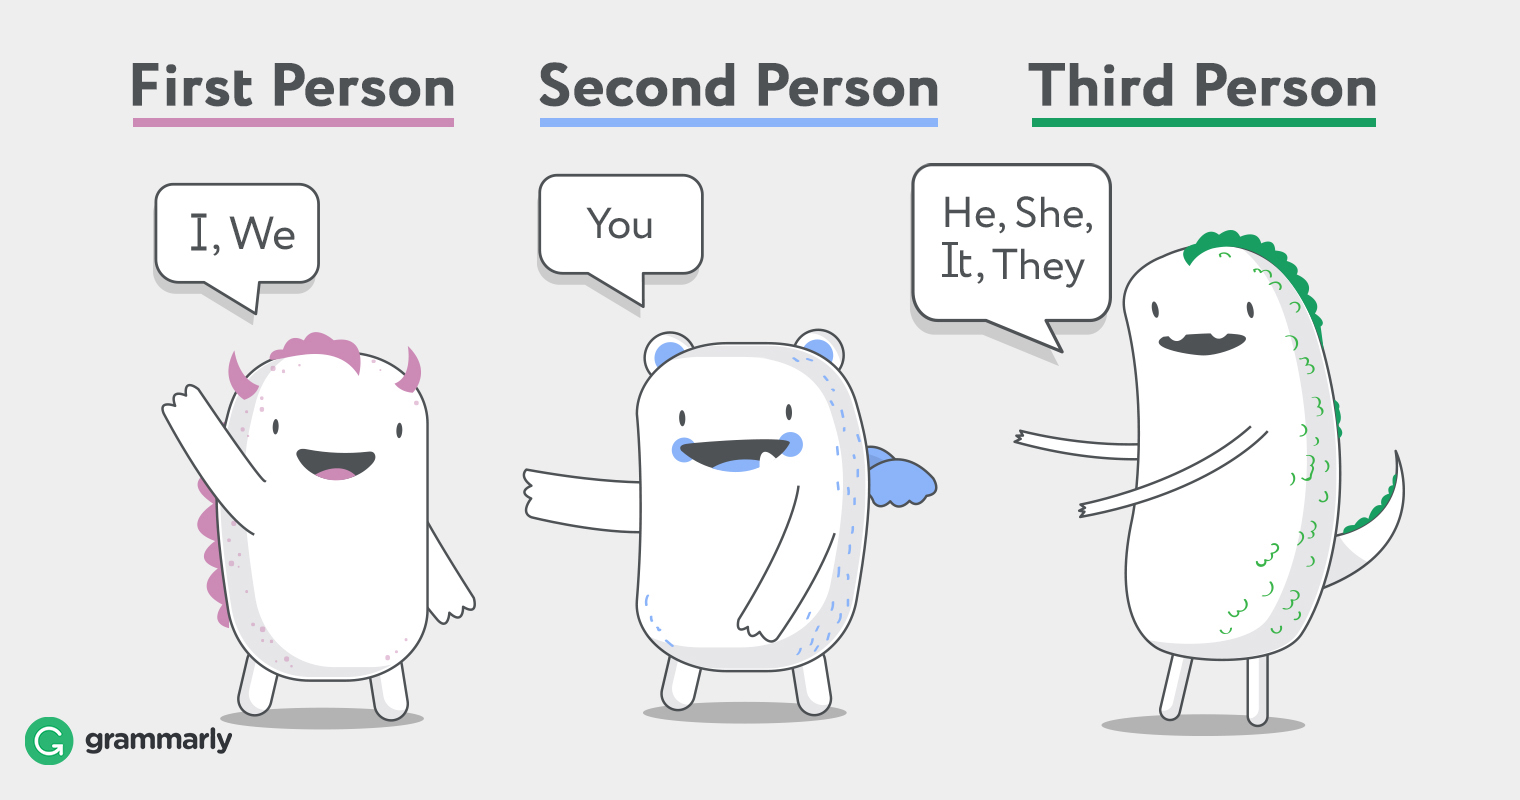 using third person pronouns to describe myself essay Is using he for a gender-neutral third-person correct by common use i mean, can i expect my paper not to be penalised because i use he as pronoun for a student, etc i think he/she is too clumsy and i am not comfortable with singular they.